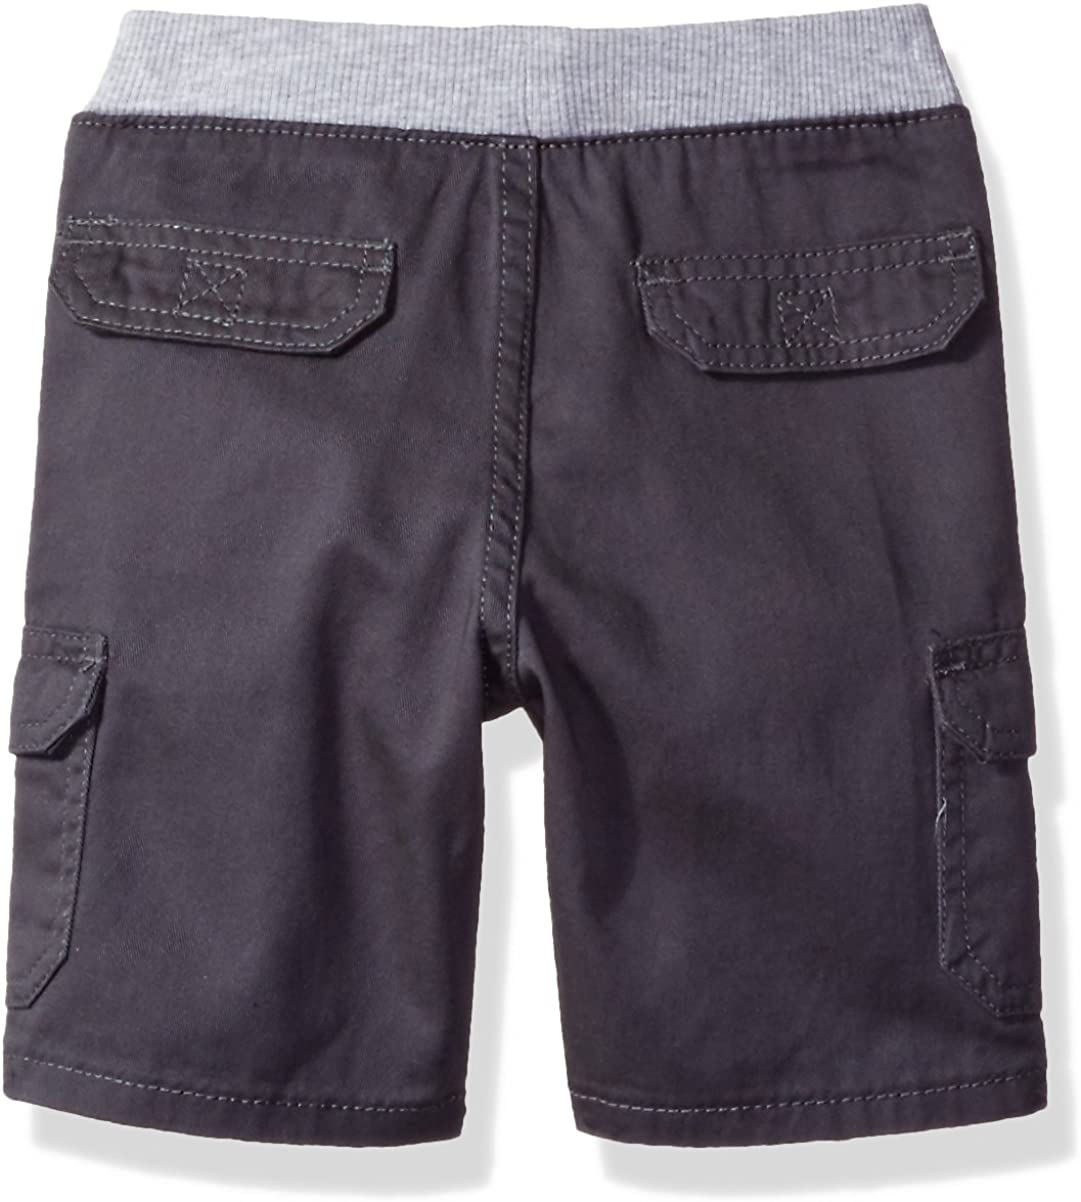 Wrangler Authentics Toddler Boys Knit Waist Short